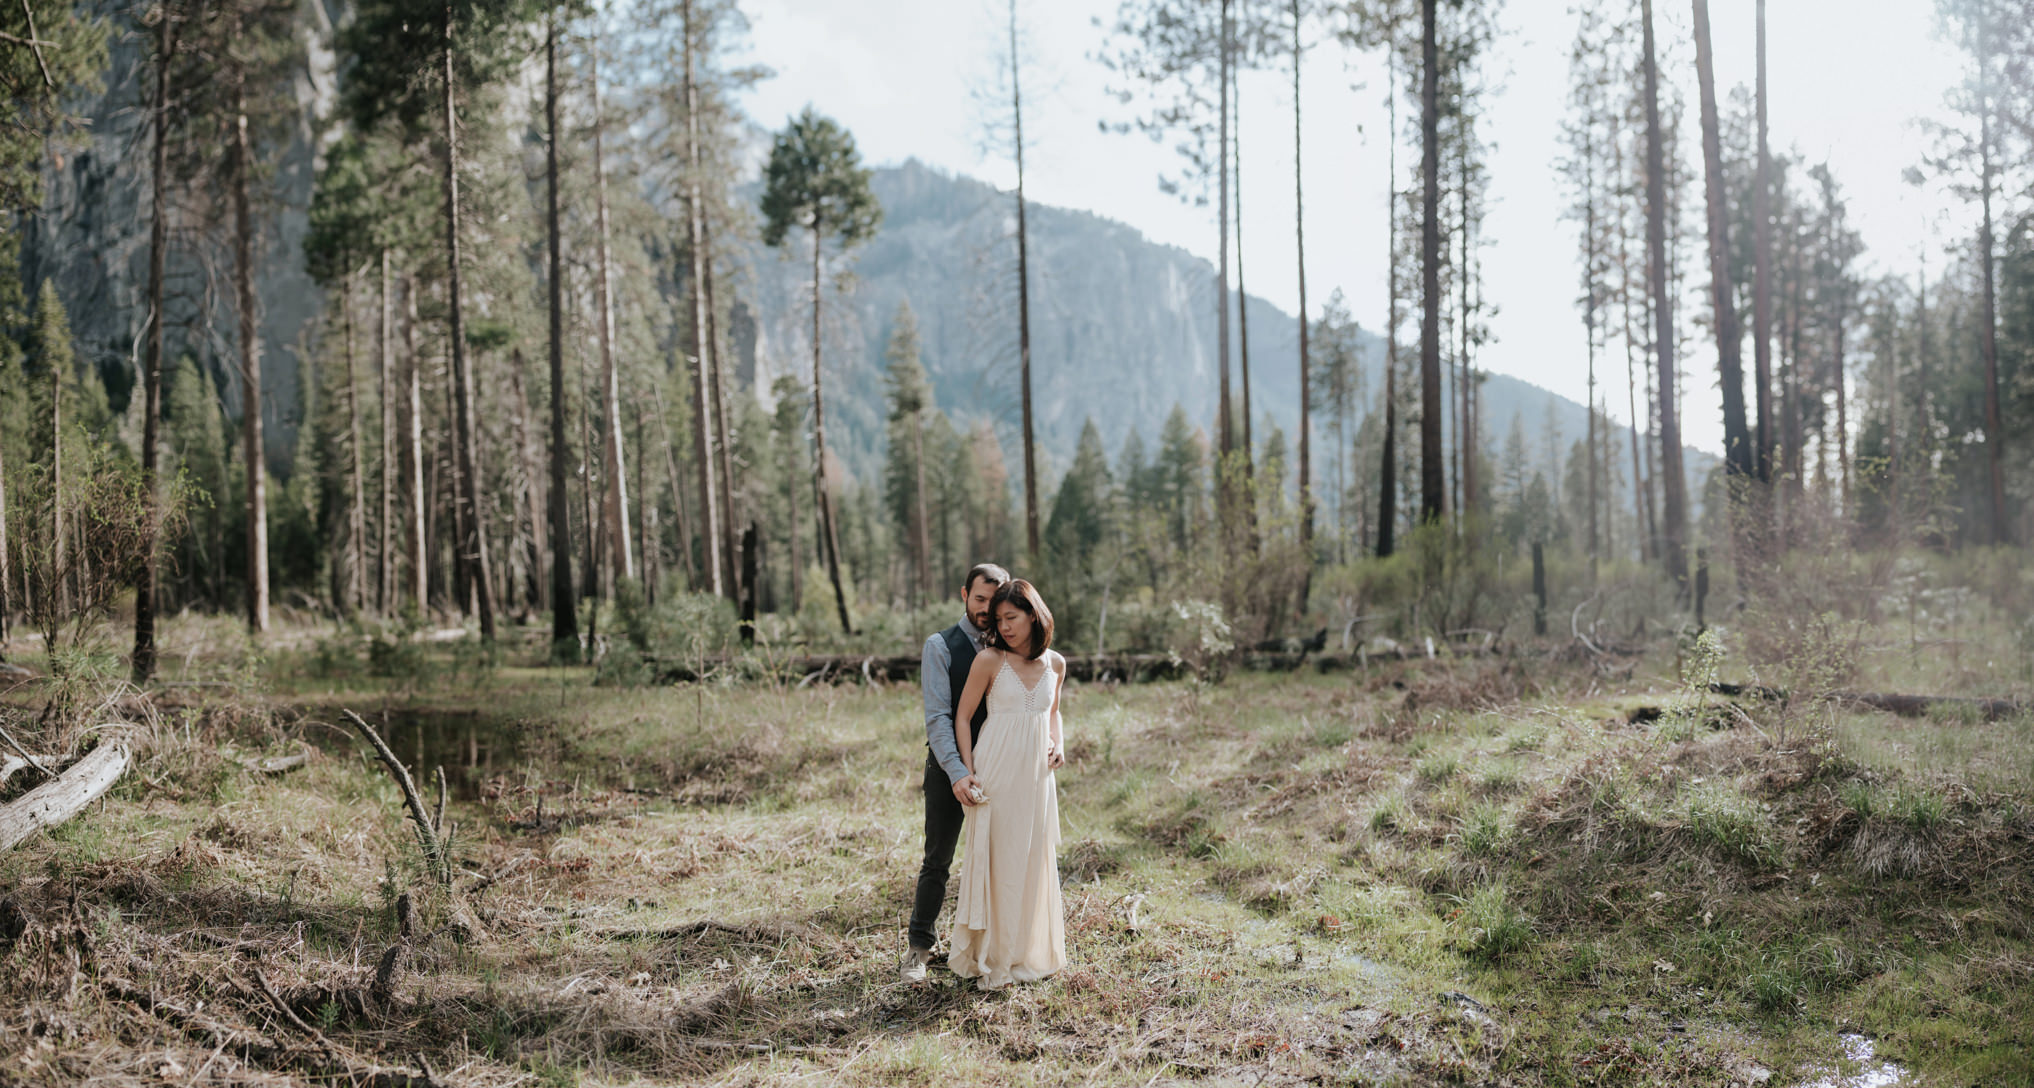 Intimate Yosemite Wedding Portraits // Daring Wanderer